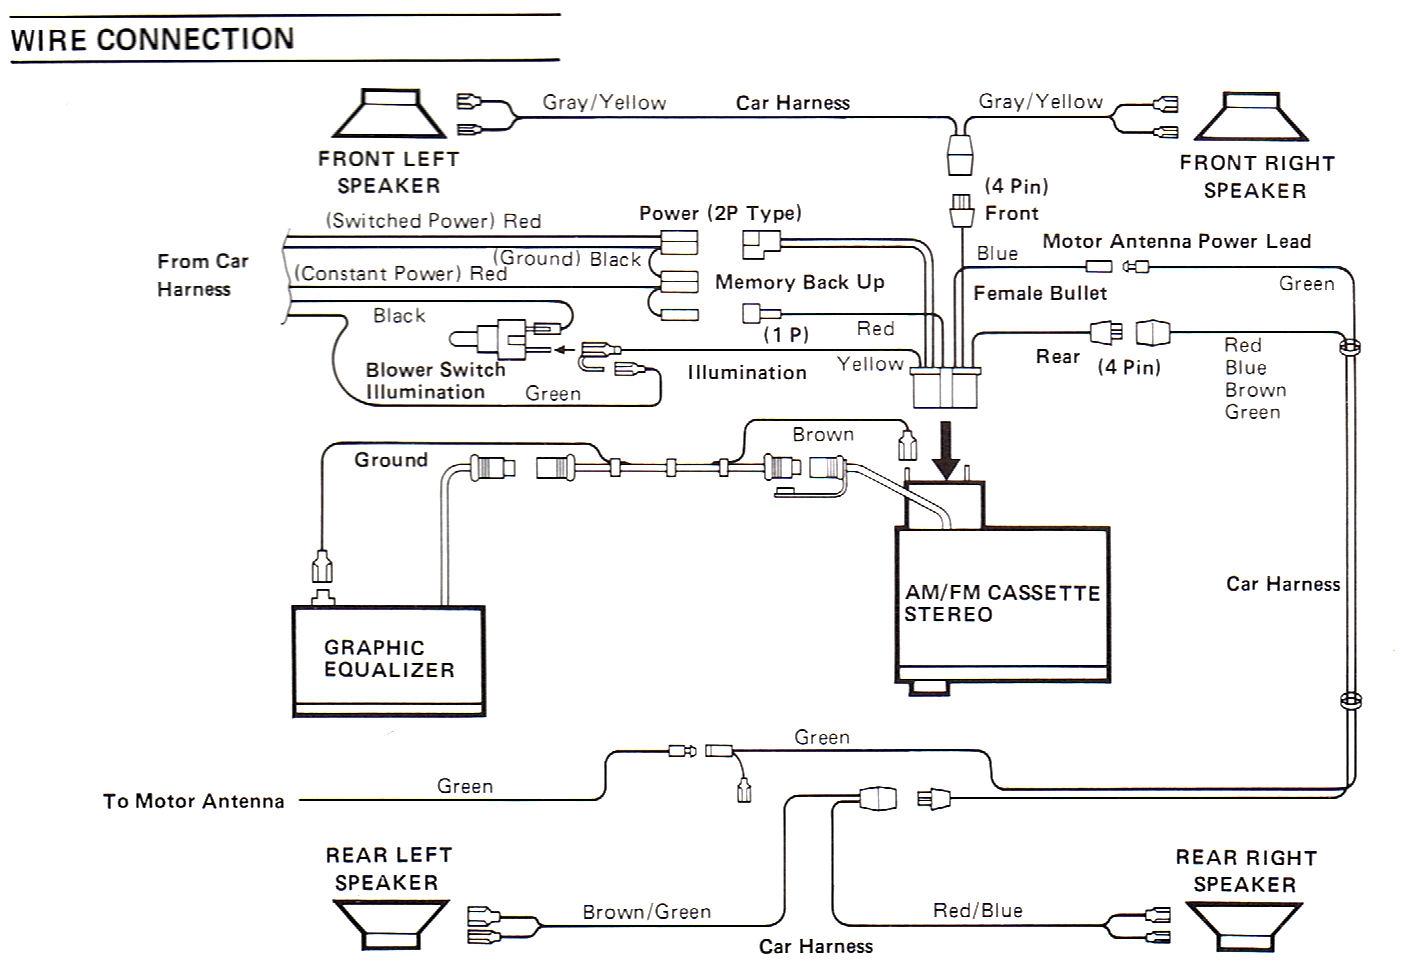 Car Equalizer Wiring Diagram from schematron.org